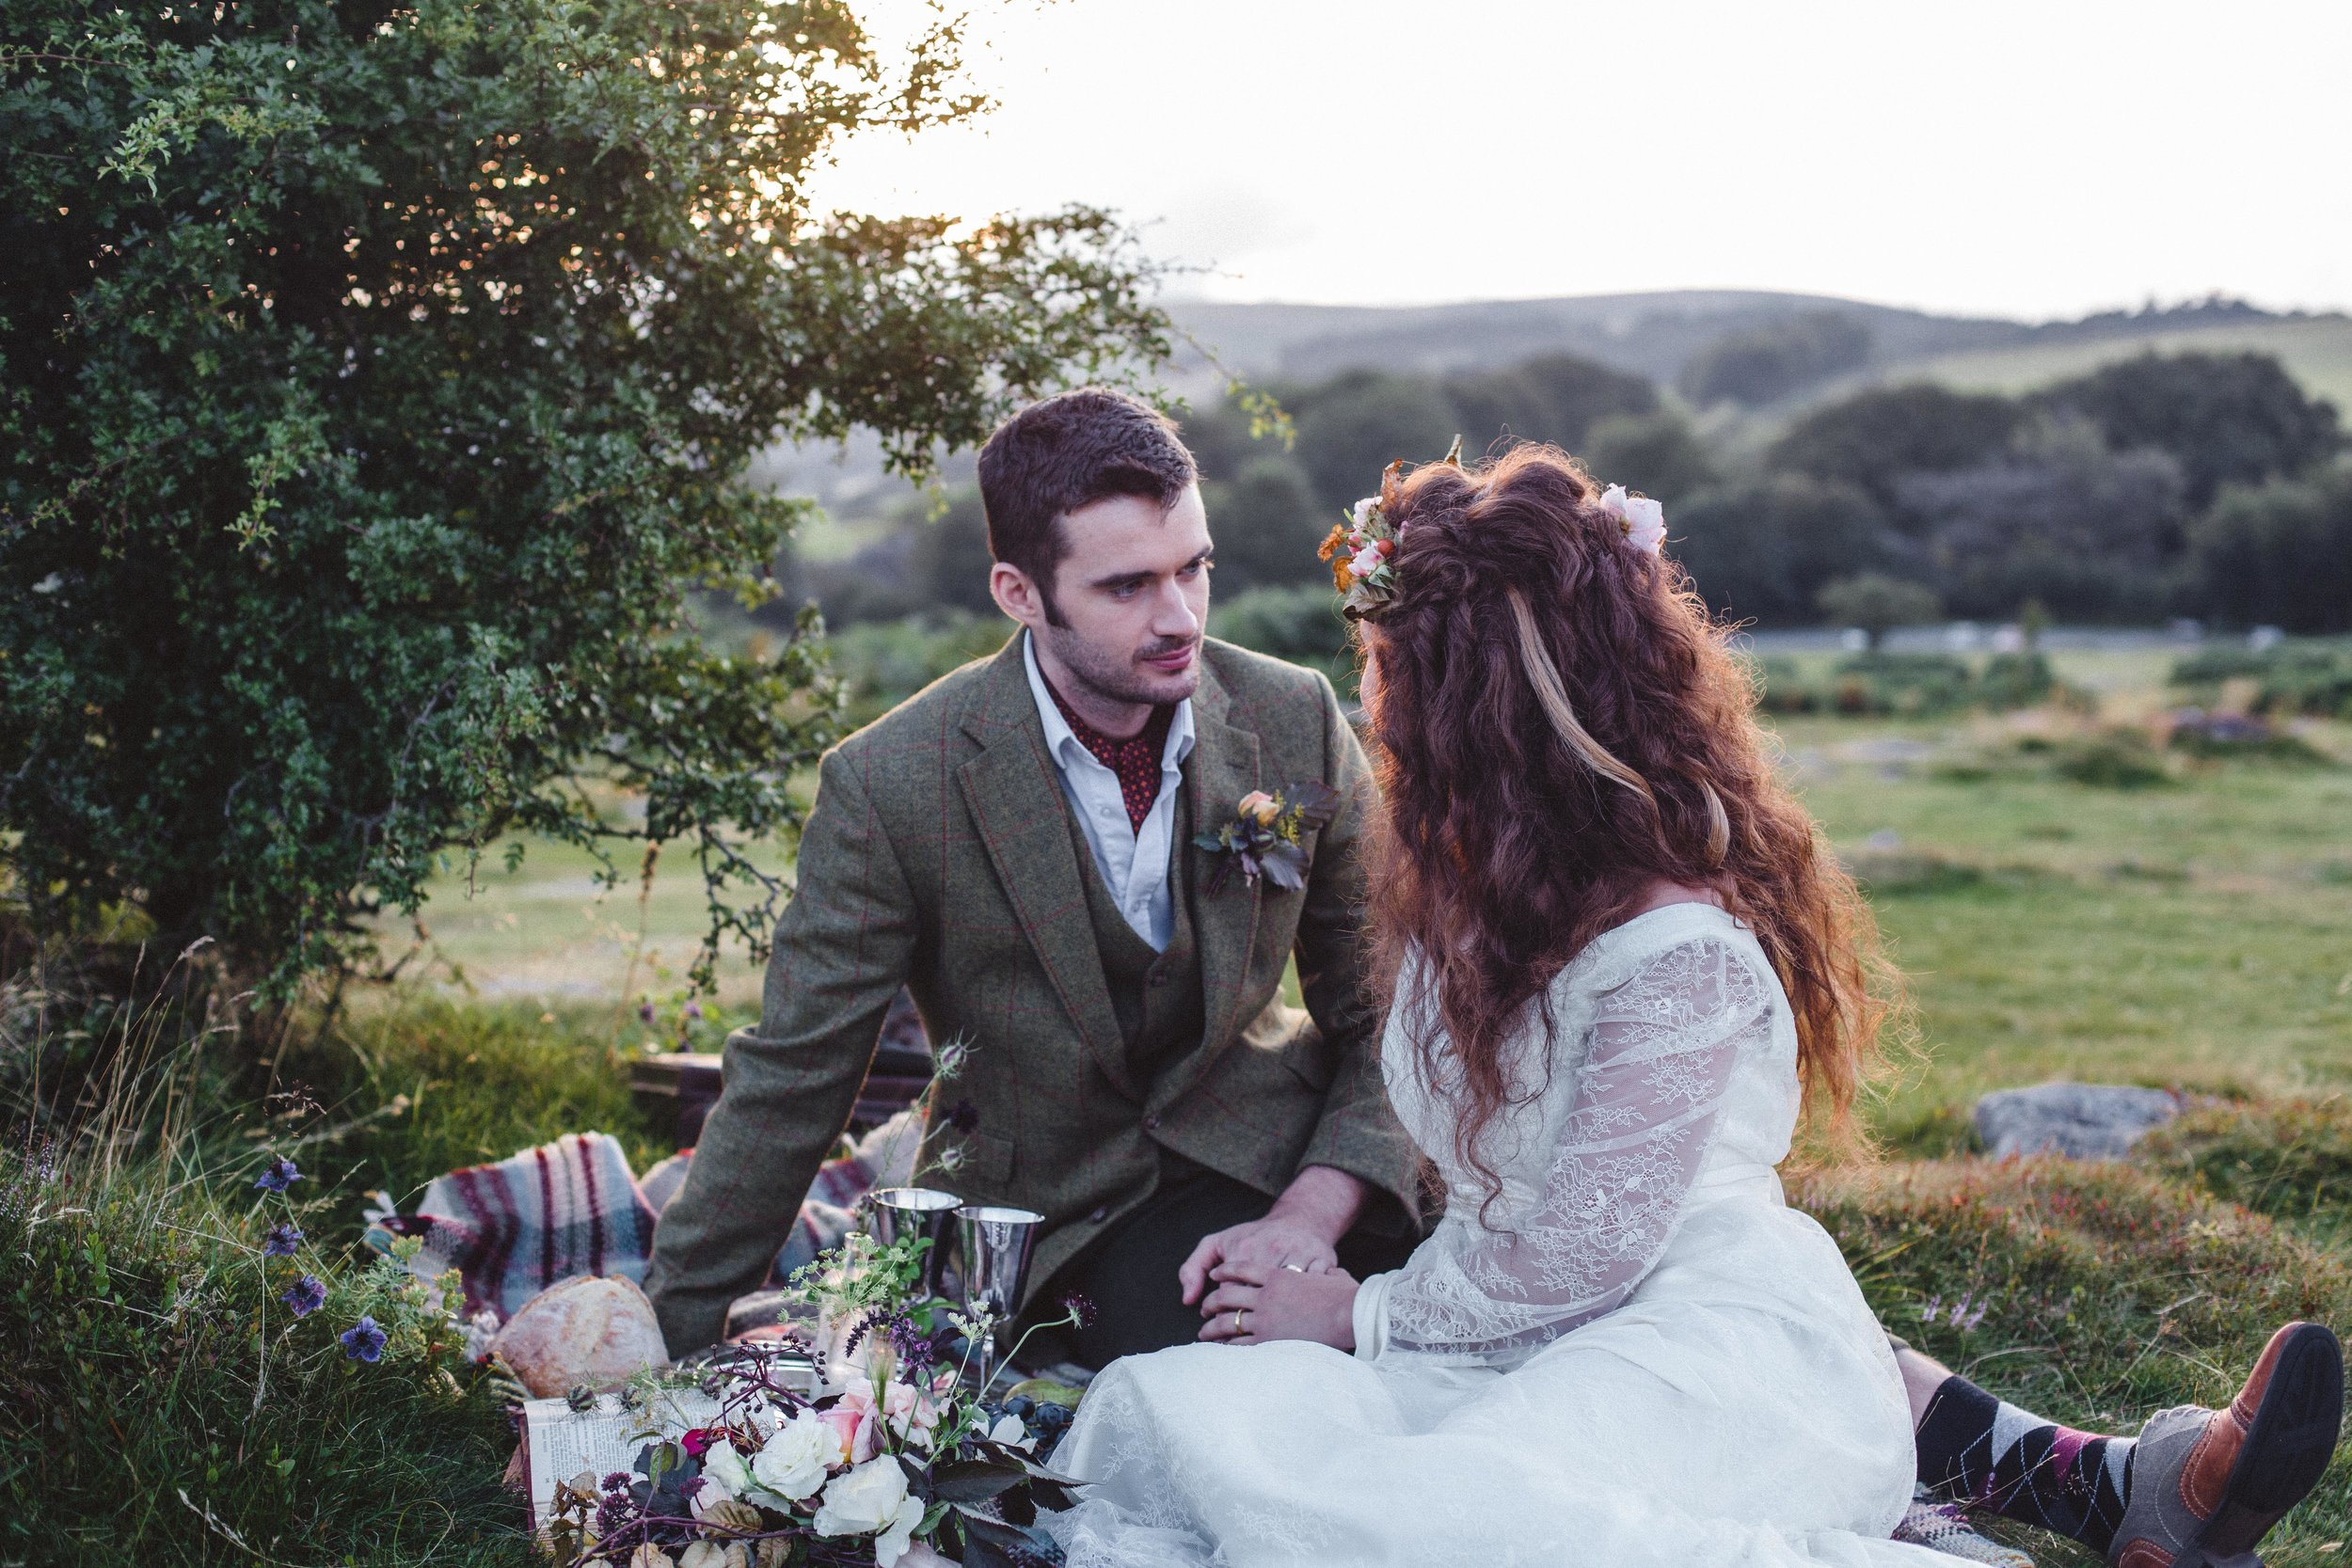 Enjoy a bit of quiet time with a wedding picnic to relax before the evening celebrations.